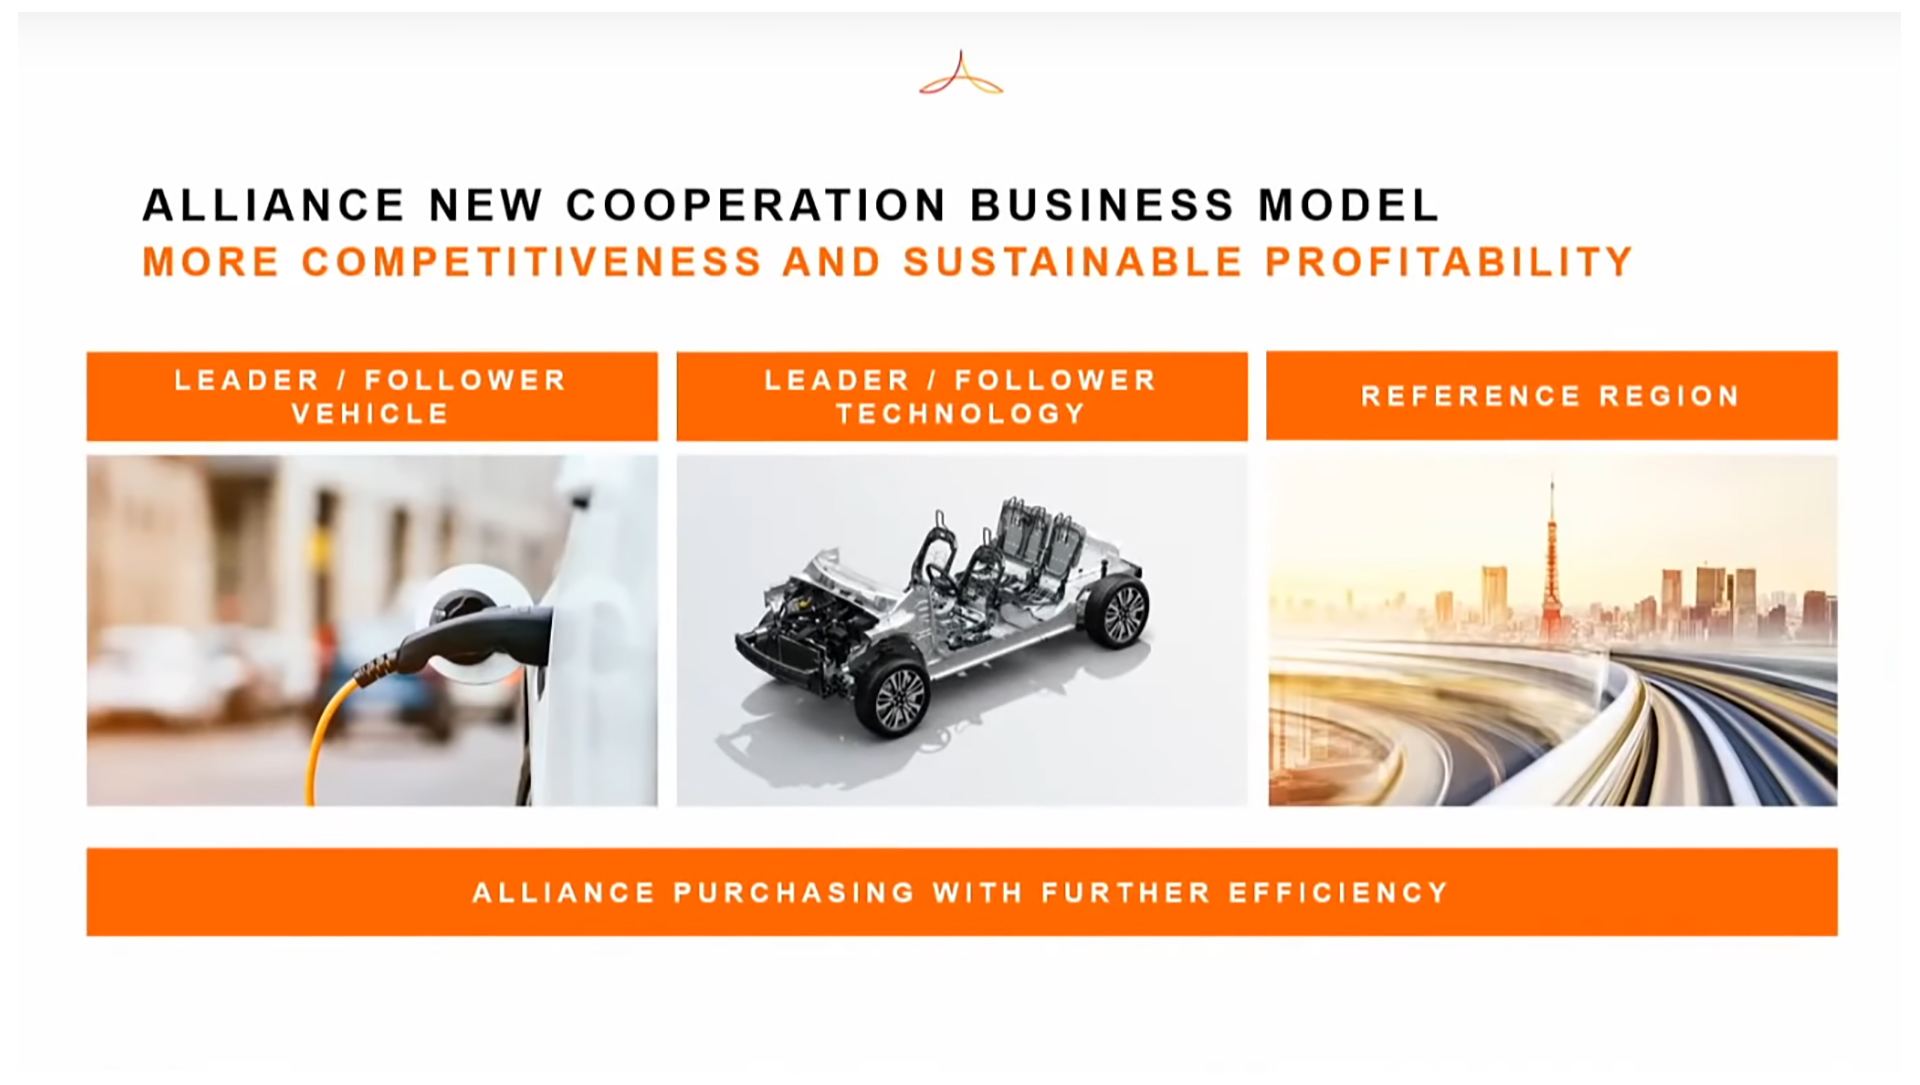 Alliance Renault Nissan Mitsubishi - 2020 - Alliance new cooperation business model